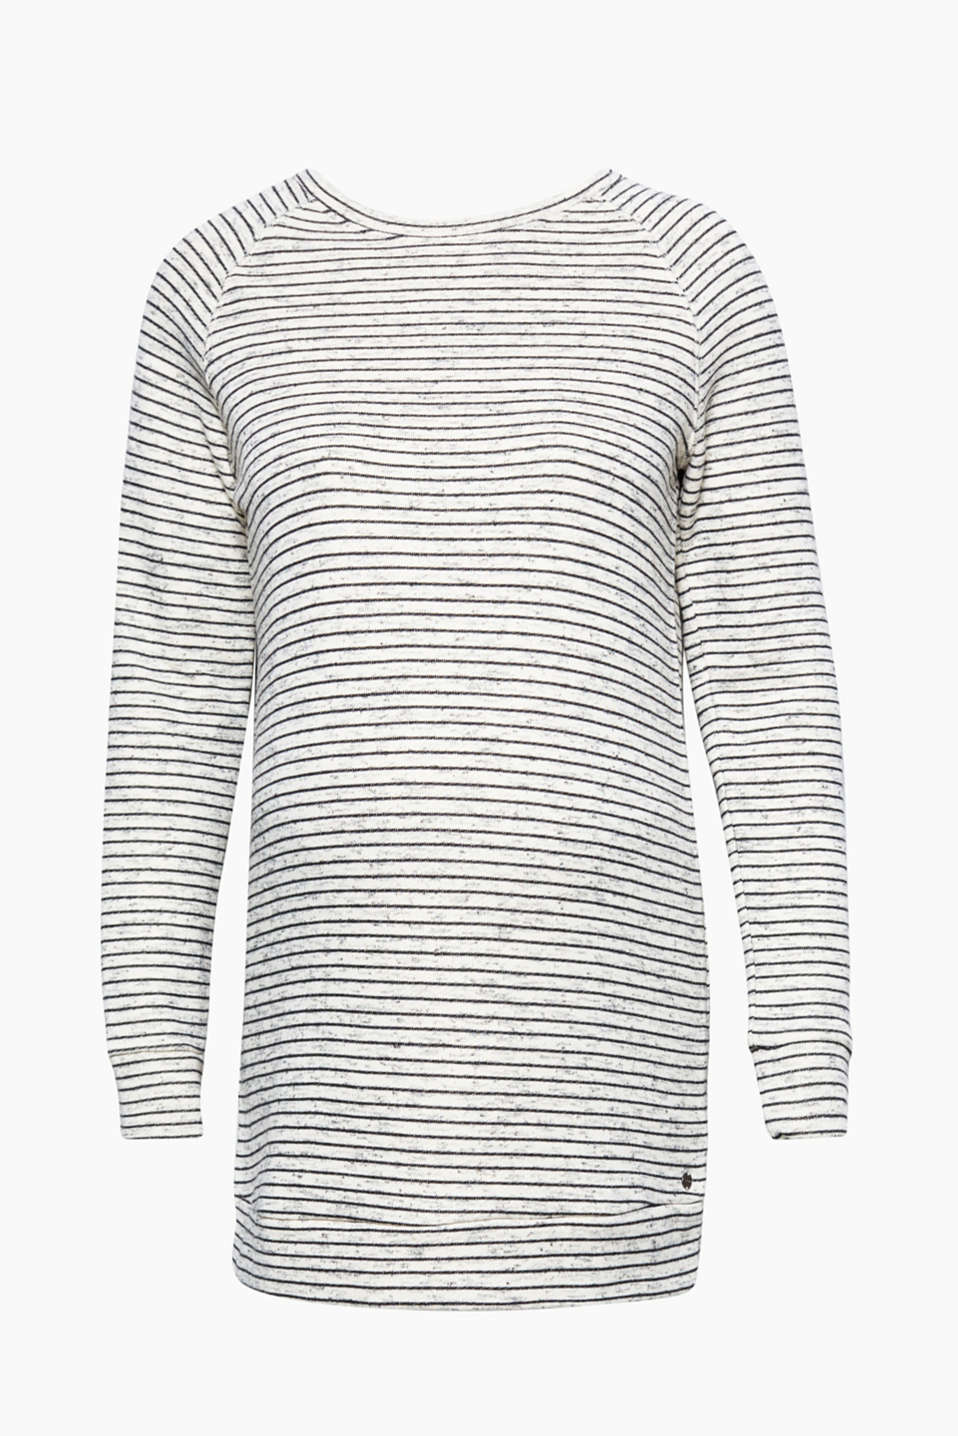 Wonderfully simple: this lightweight long sweatshirt is super comfortable to wear and features cheerful stripes!